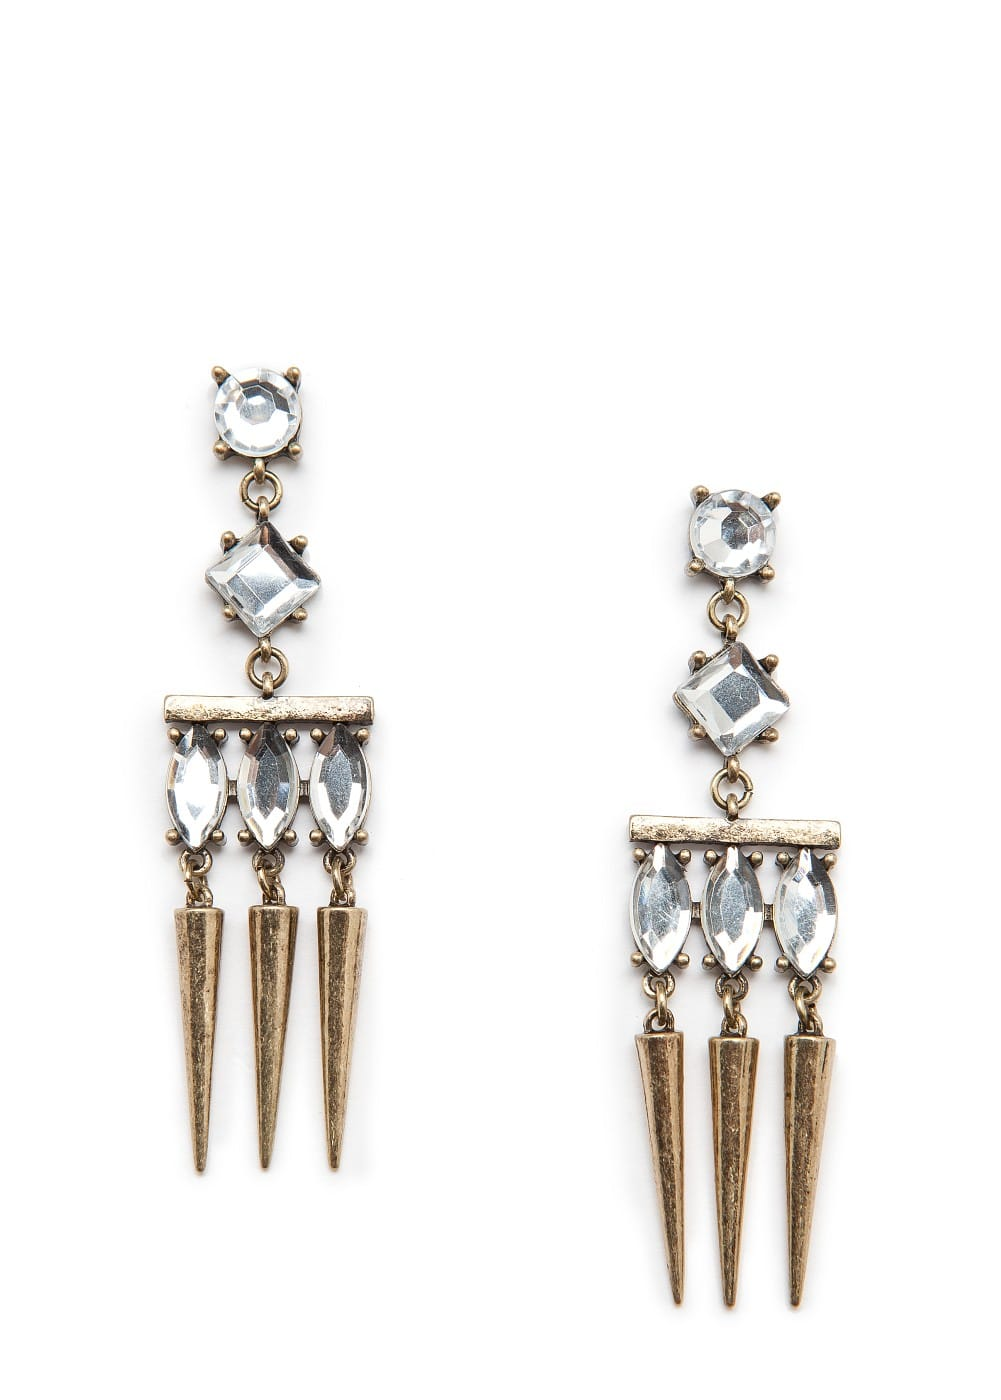 Long earrings with crystal